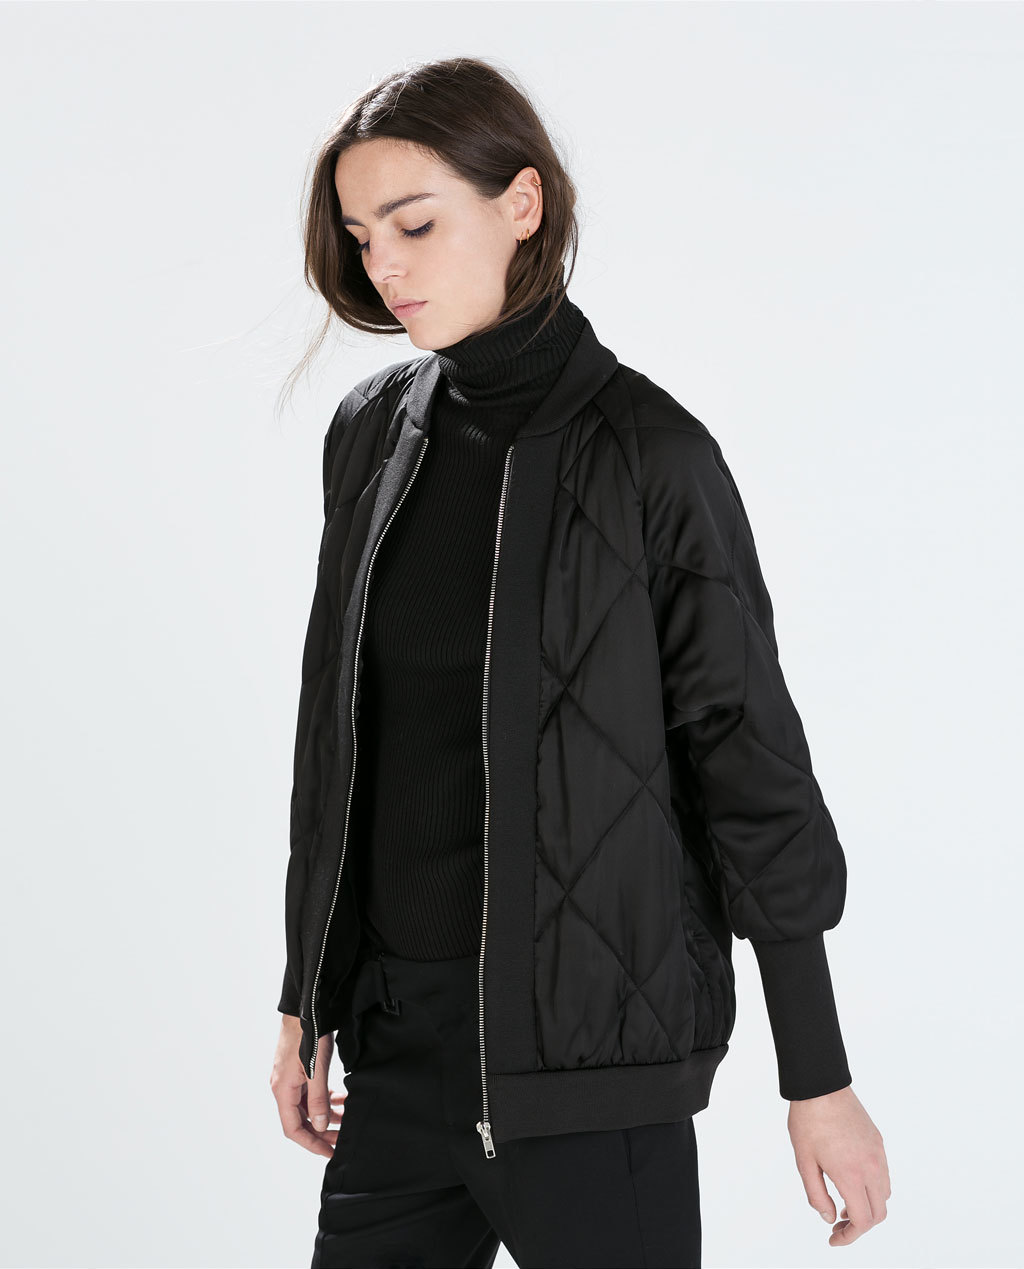 Oversized Quilted Jacket - pattern: plain; collar: round collar/collarless; style: bomber; predominant colour: black; occasions: casual, creative work; length: standard; fit: straight cut (boxy); fibres: polyester/polyamide - 100%; sleeve length: long sleeve; sleeve style: standard; collar break: high; pattern type: fabric; texture group: other - bulky/heavy; embellishment: quilted; season: a/w 2014